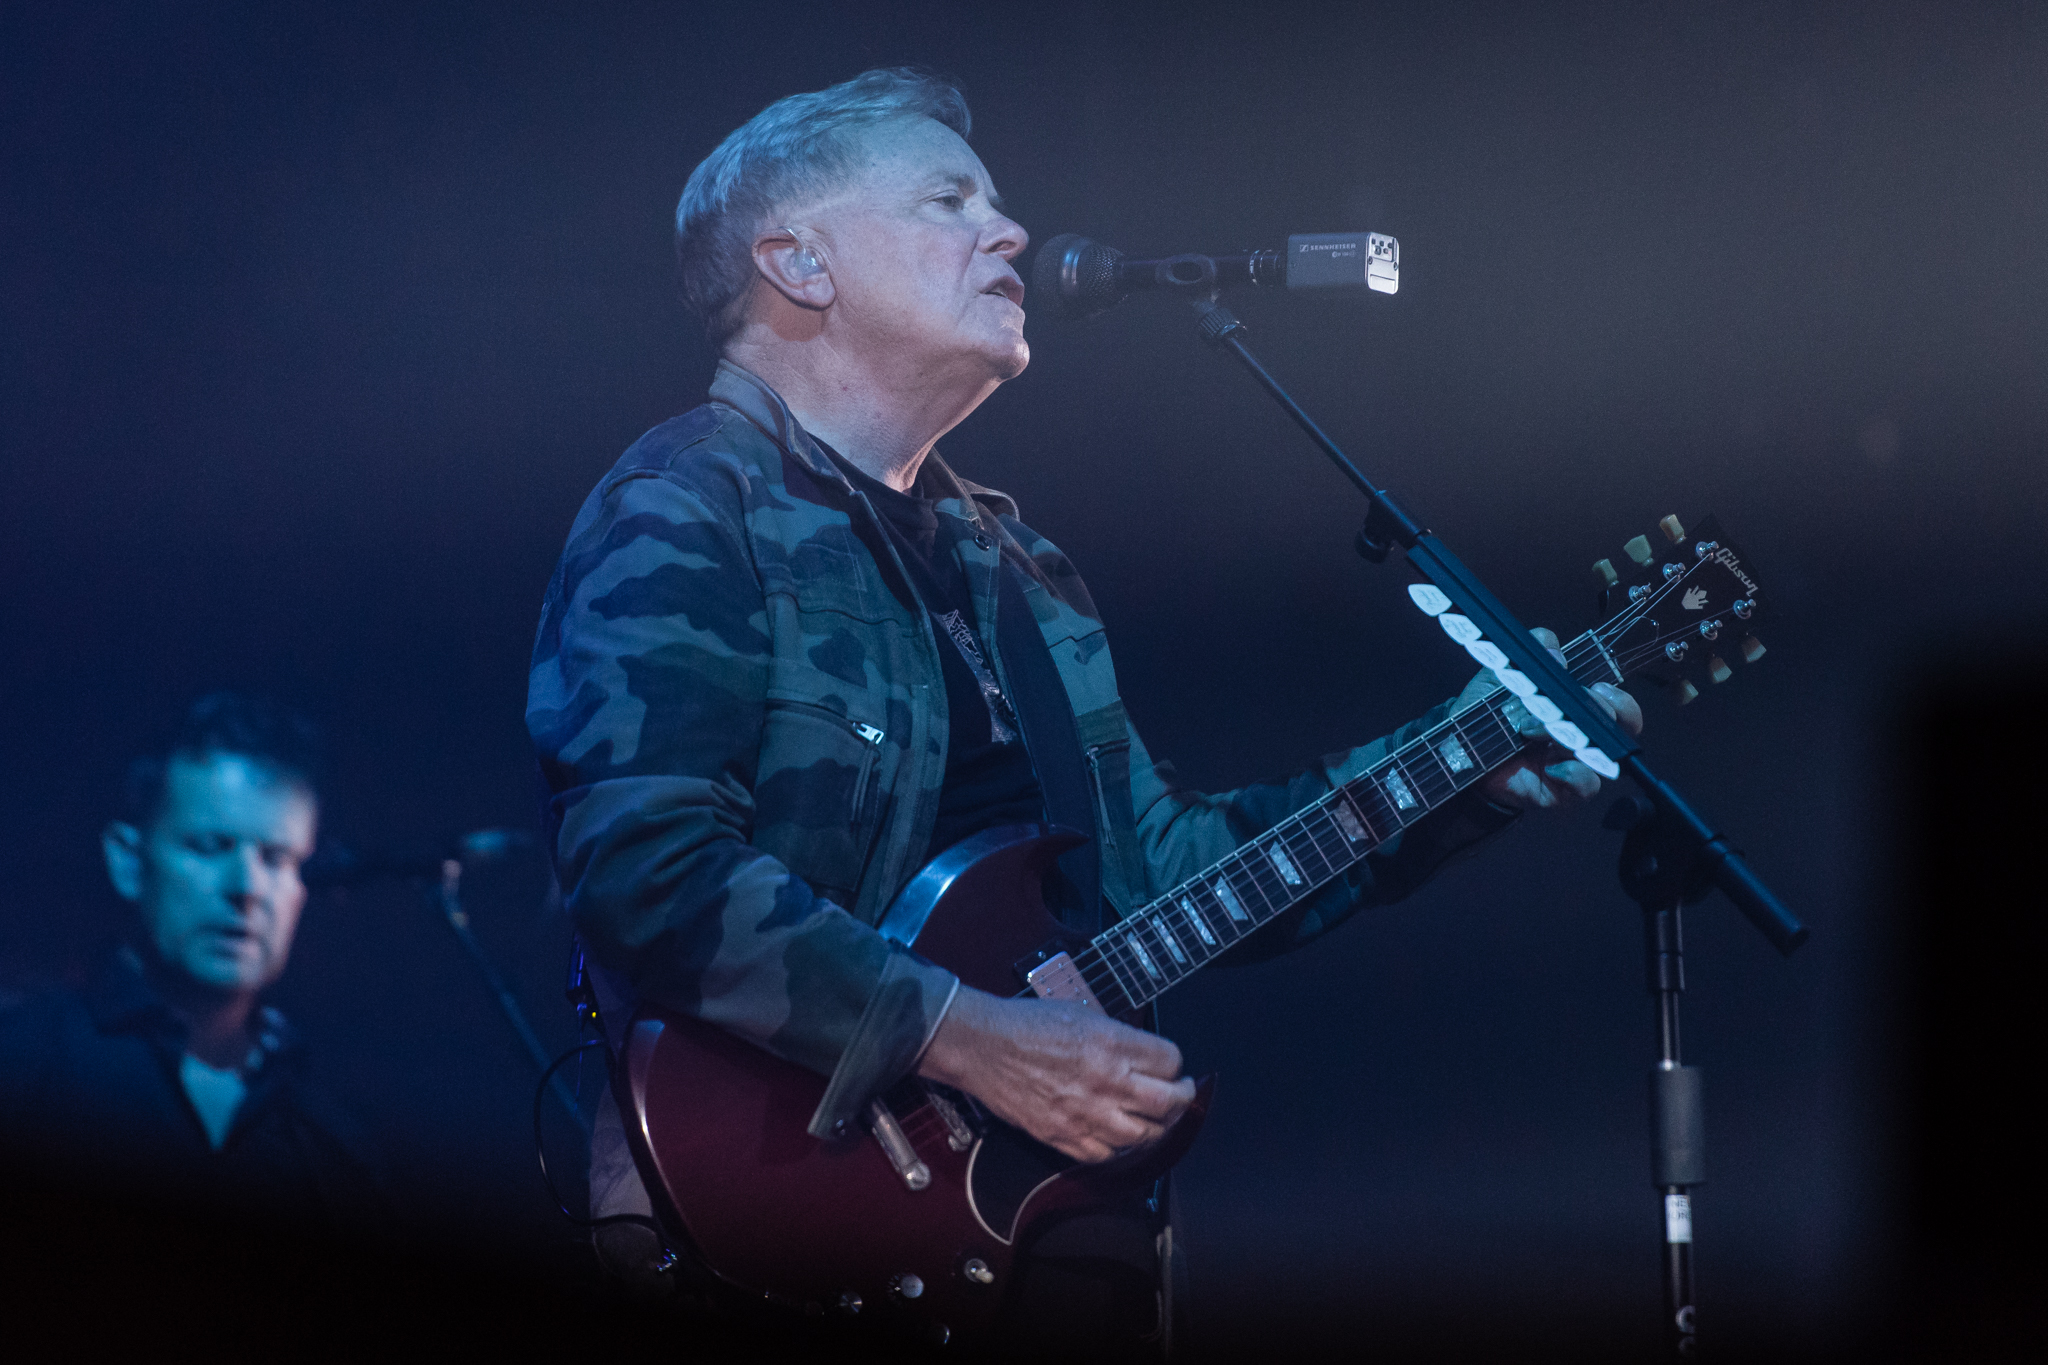 02 New Order - Bluedot 2019 - Jon Mo